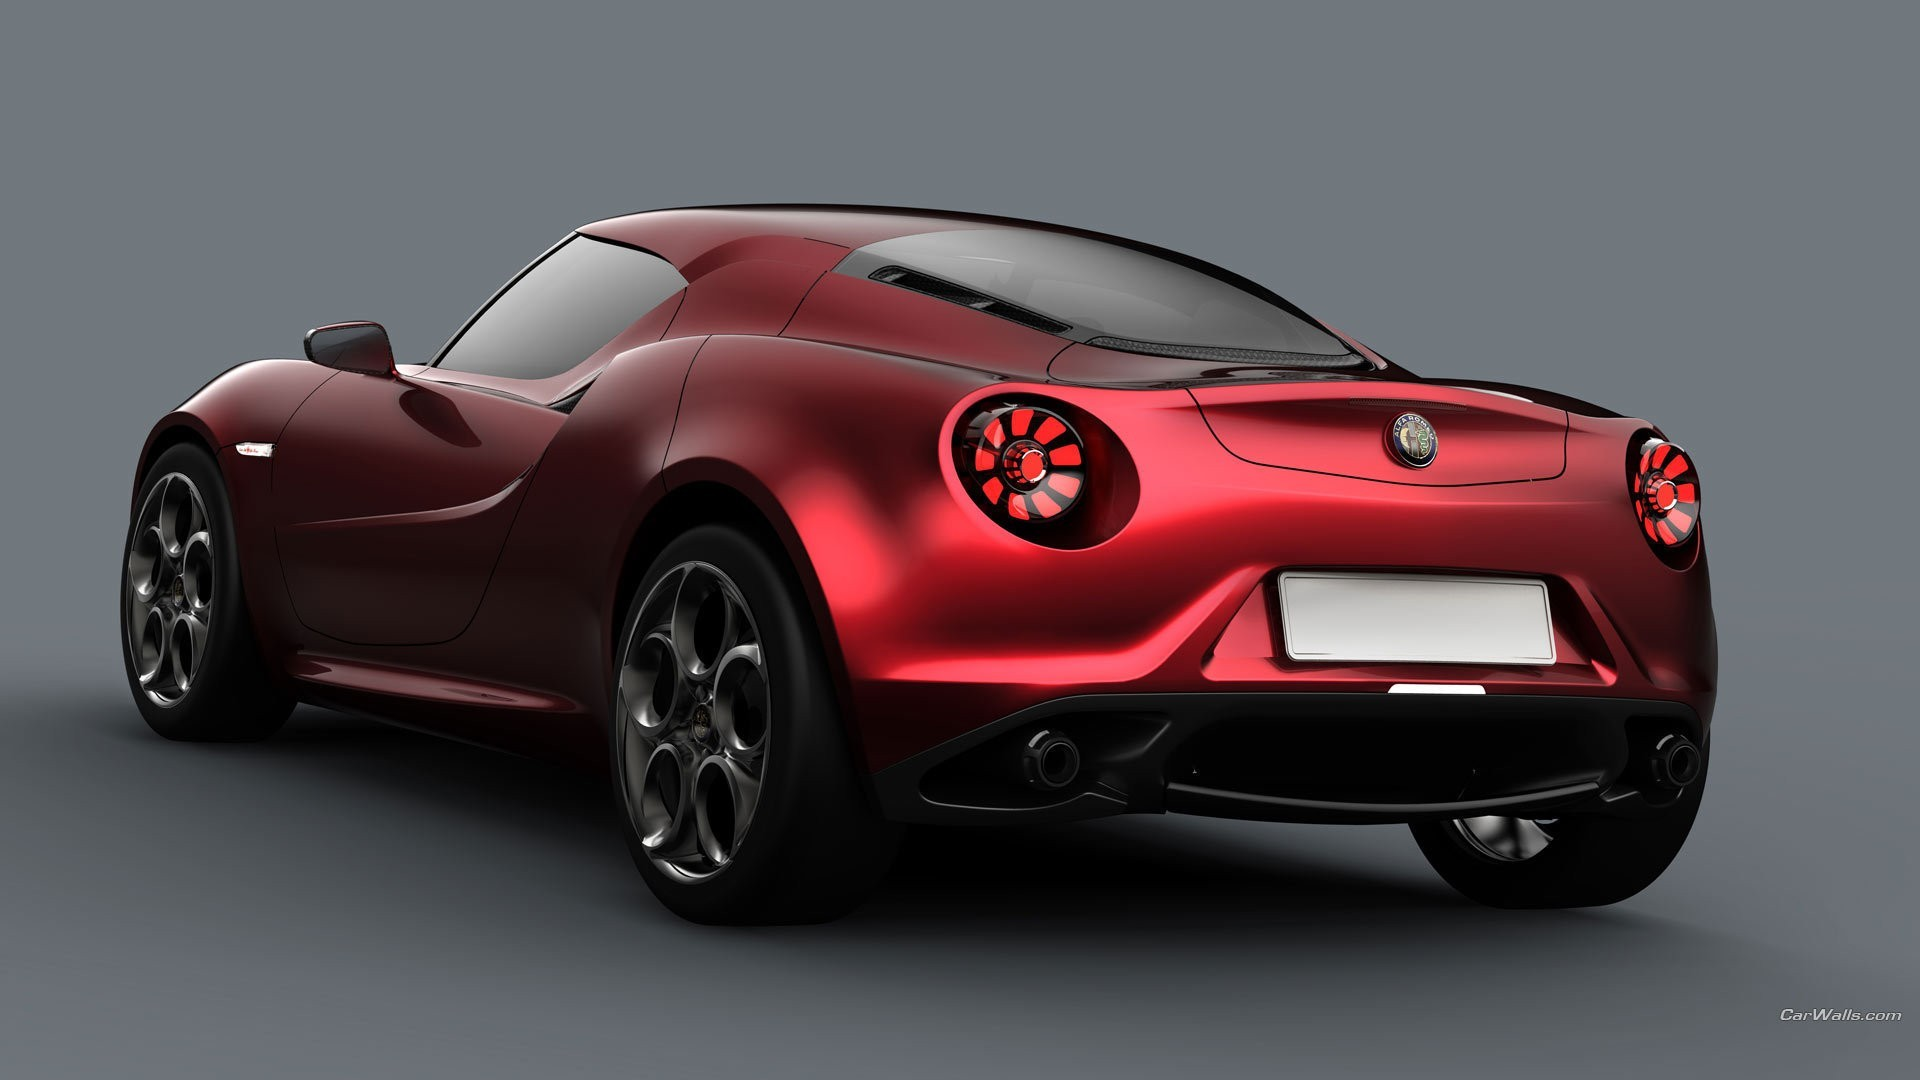 cars Alfa Romeo vehicles HD Wallpaper